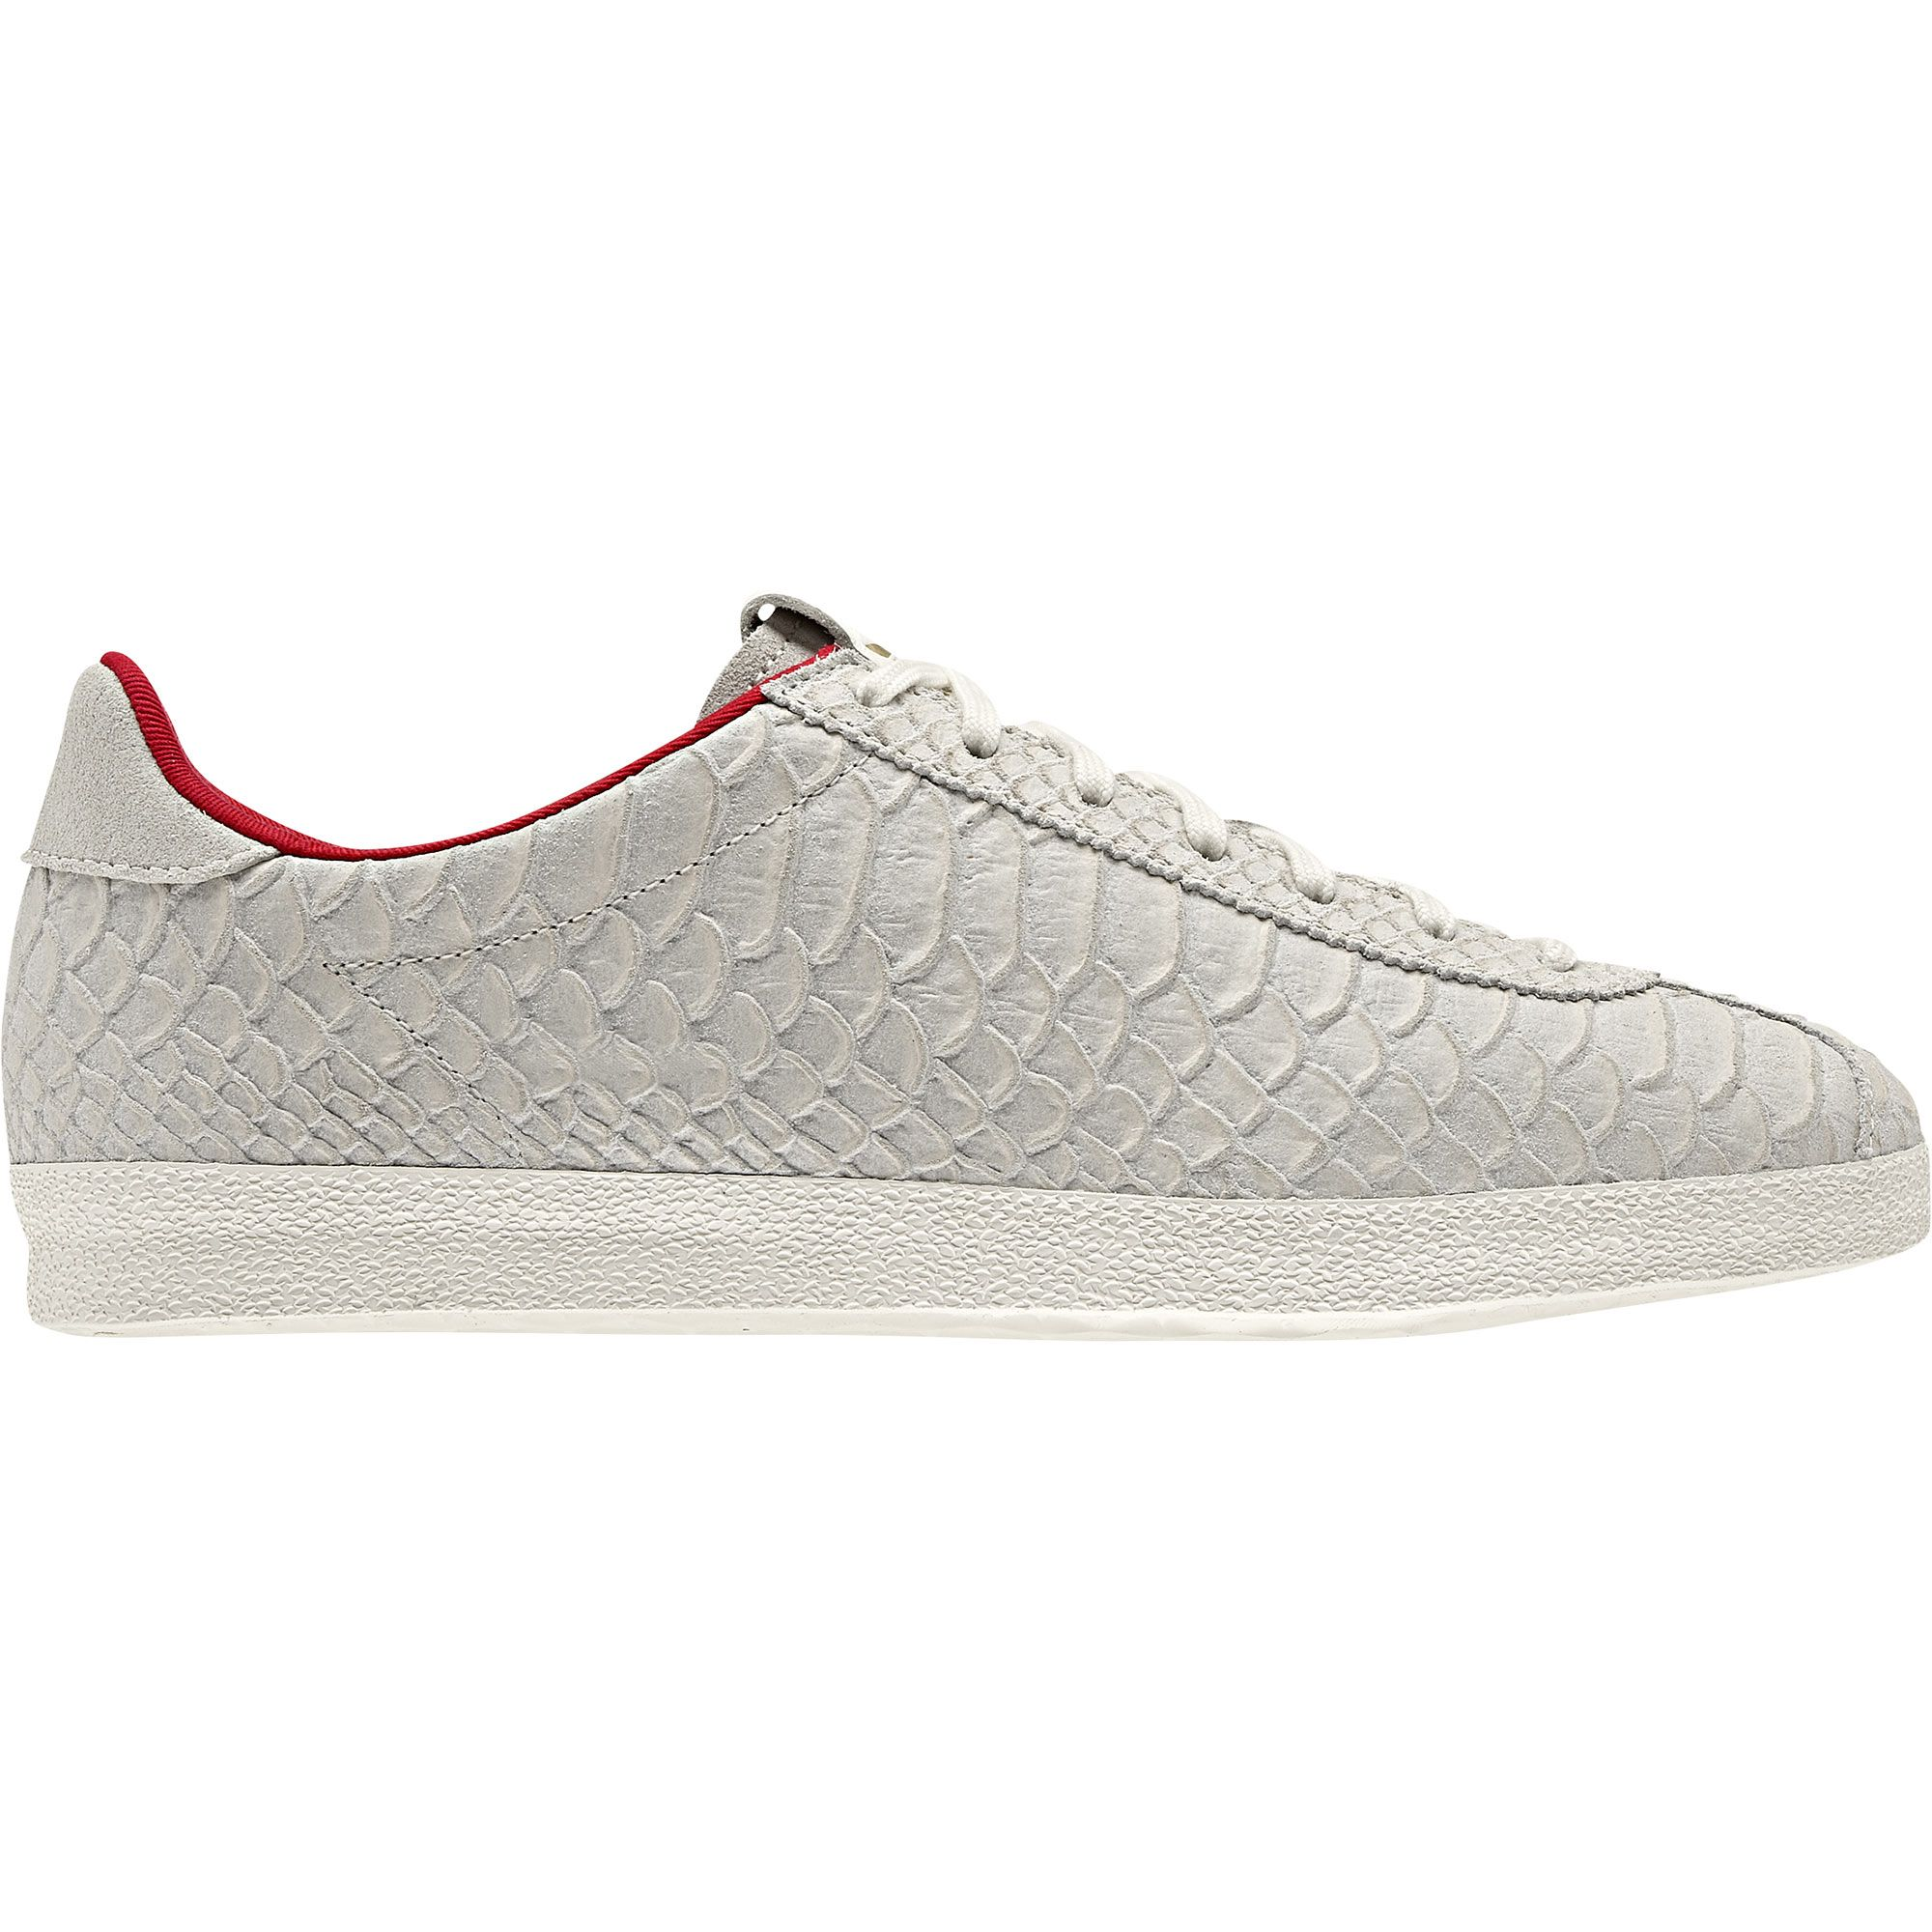 tristeza Confirmación aeropuerto  adidas Women's Gazelle OG Dragon Shoes | adidas Canada | Adidas women, Shoes,  Adidas online